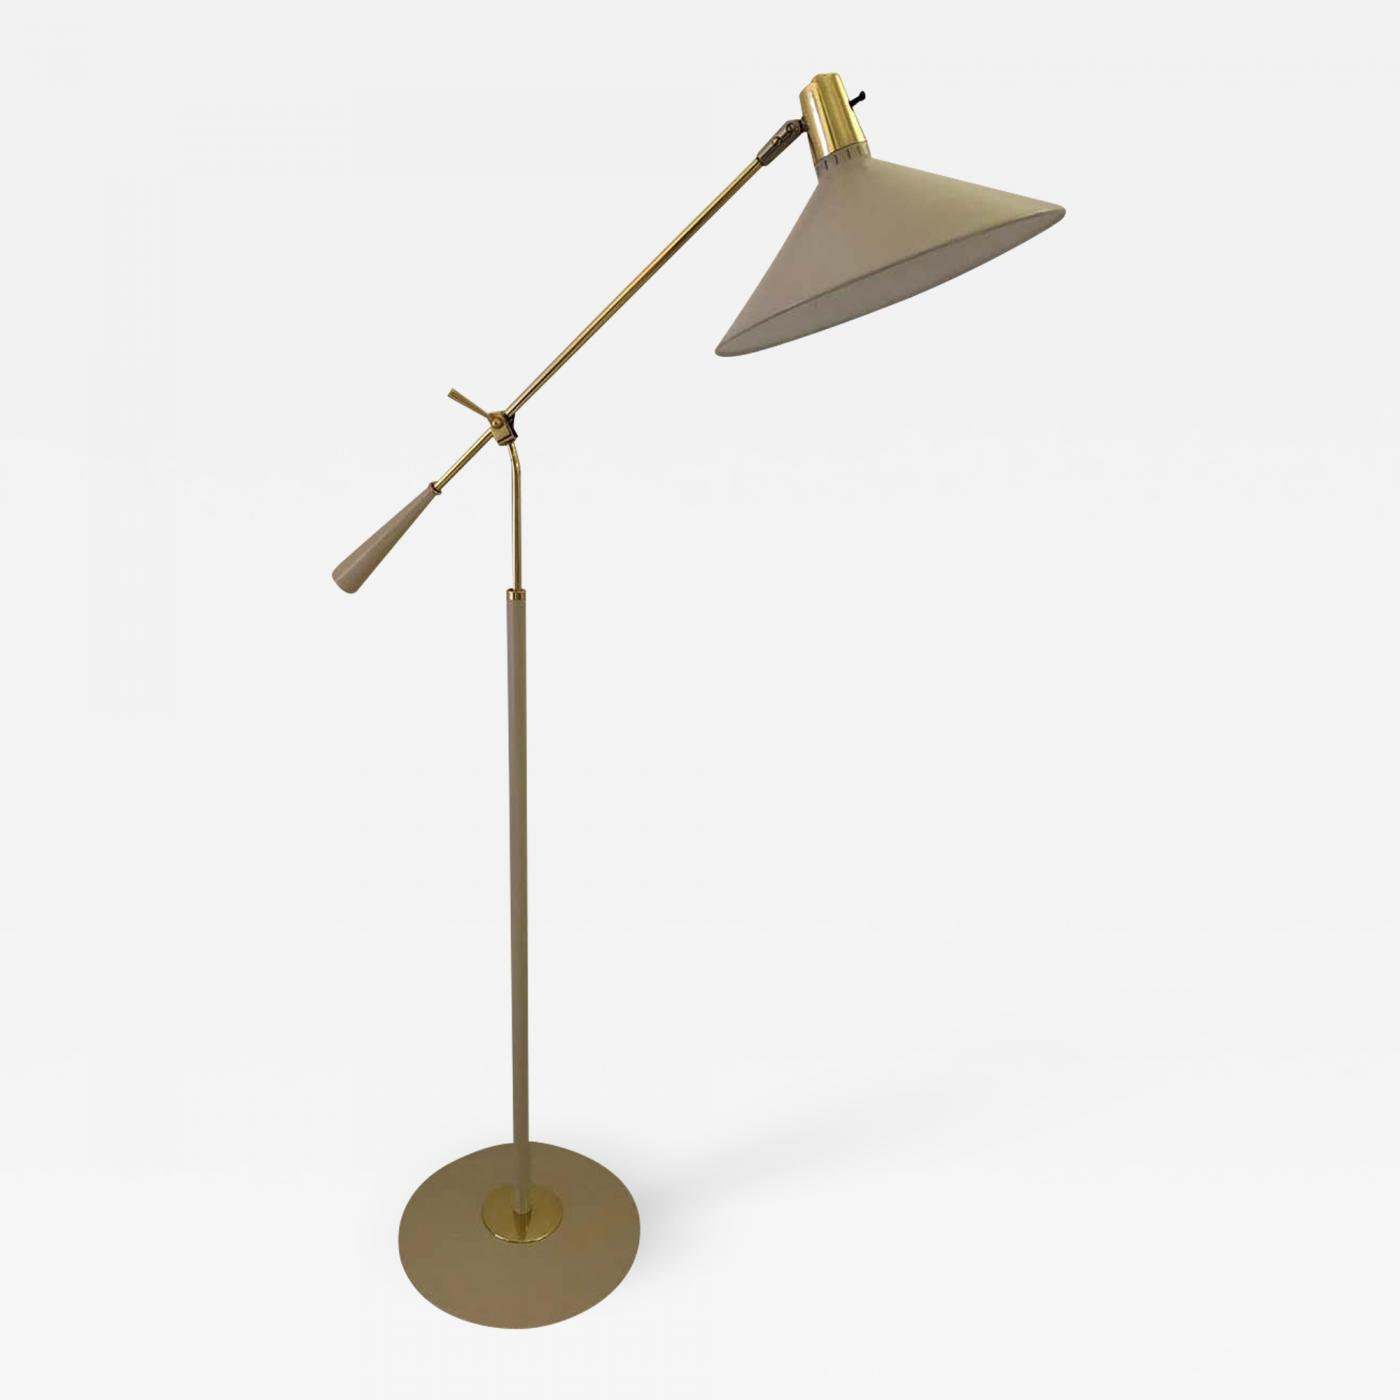 Stilnovo Stilnovo Midcentury Adjustable Height Swing Arm Standing Lamp Reading Lamps